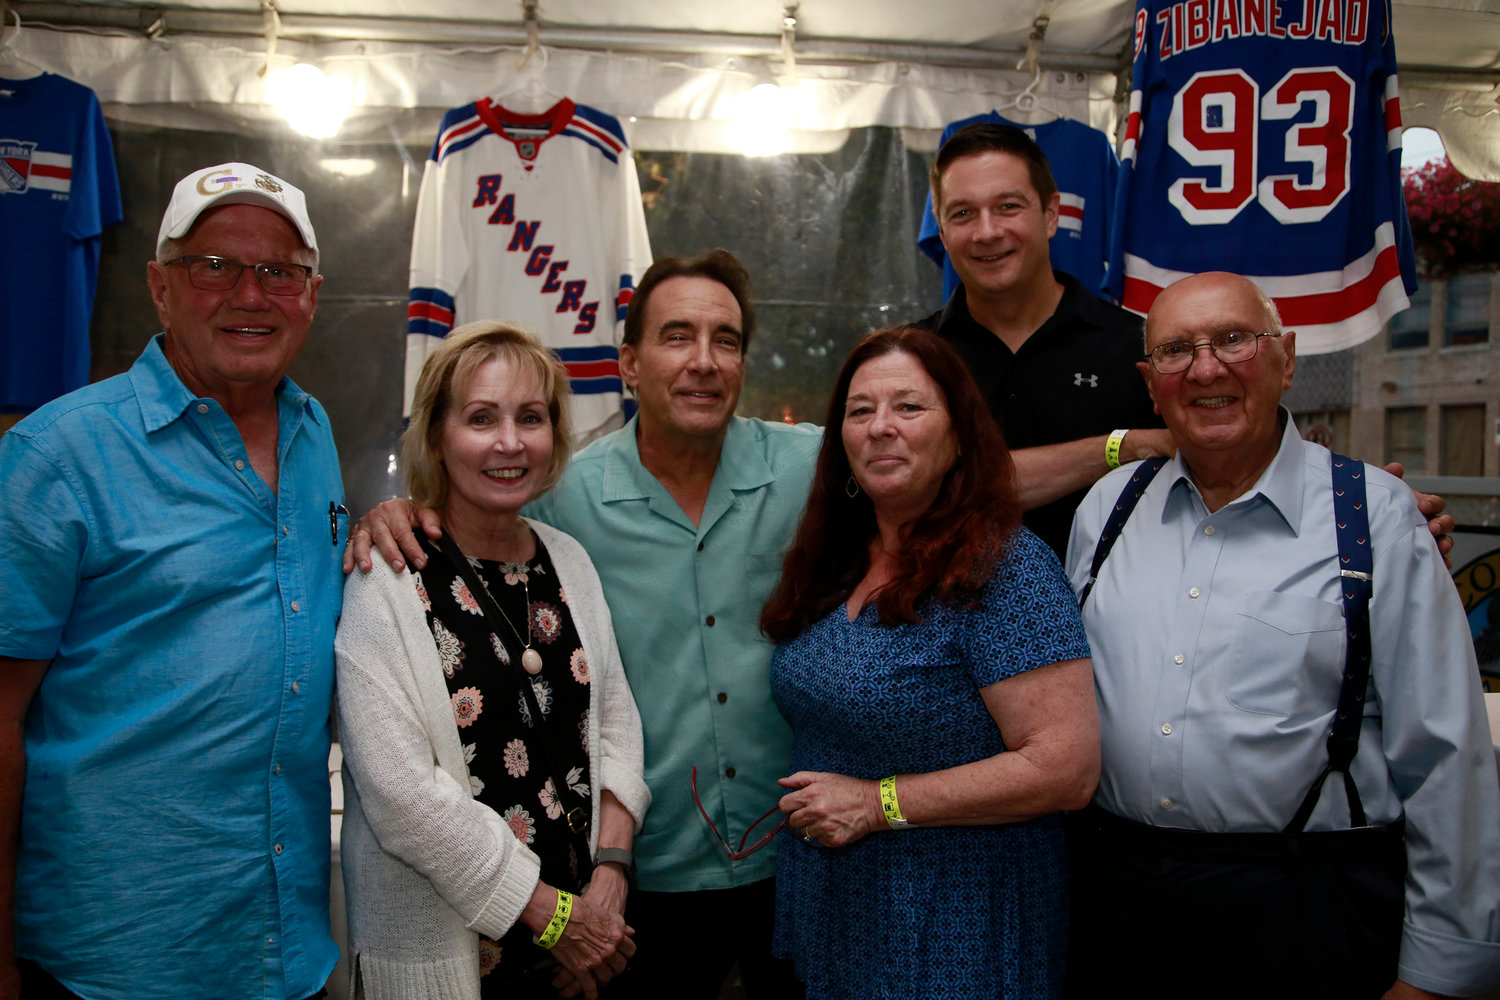 Steven McDonald Memorial Corporation members Ed Mahoney, left, Terry Emmel, Tom Begigno, Kathi Monroe, Carl Prizzi and Joseph Canzoneri hosted cocktail party fundraiser on Aug. 7.